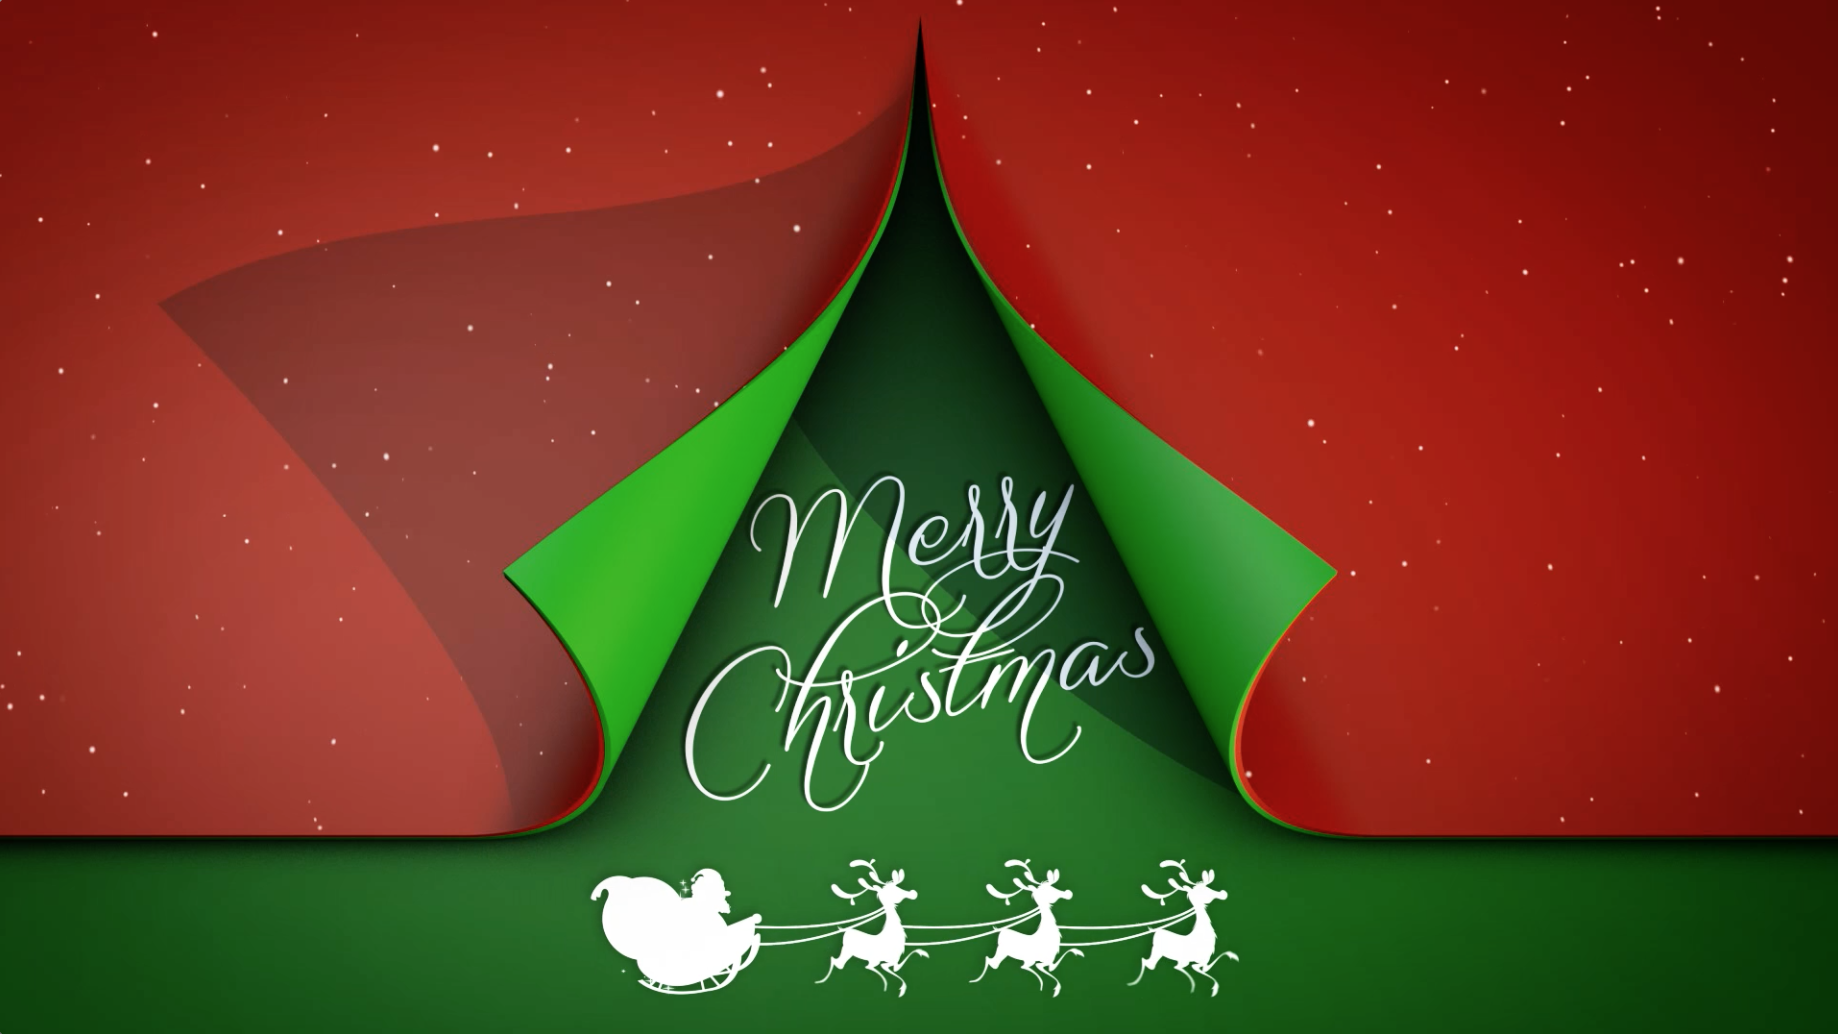 Merry christmas e card after effects template free hd video clips merry christmas e card after effects template free hd video clips stock video footage at videezy m4hsunfo